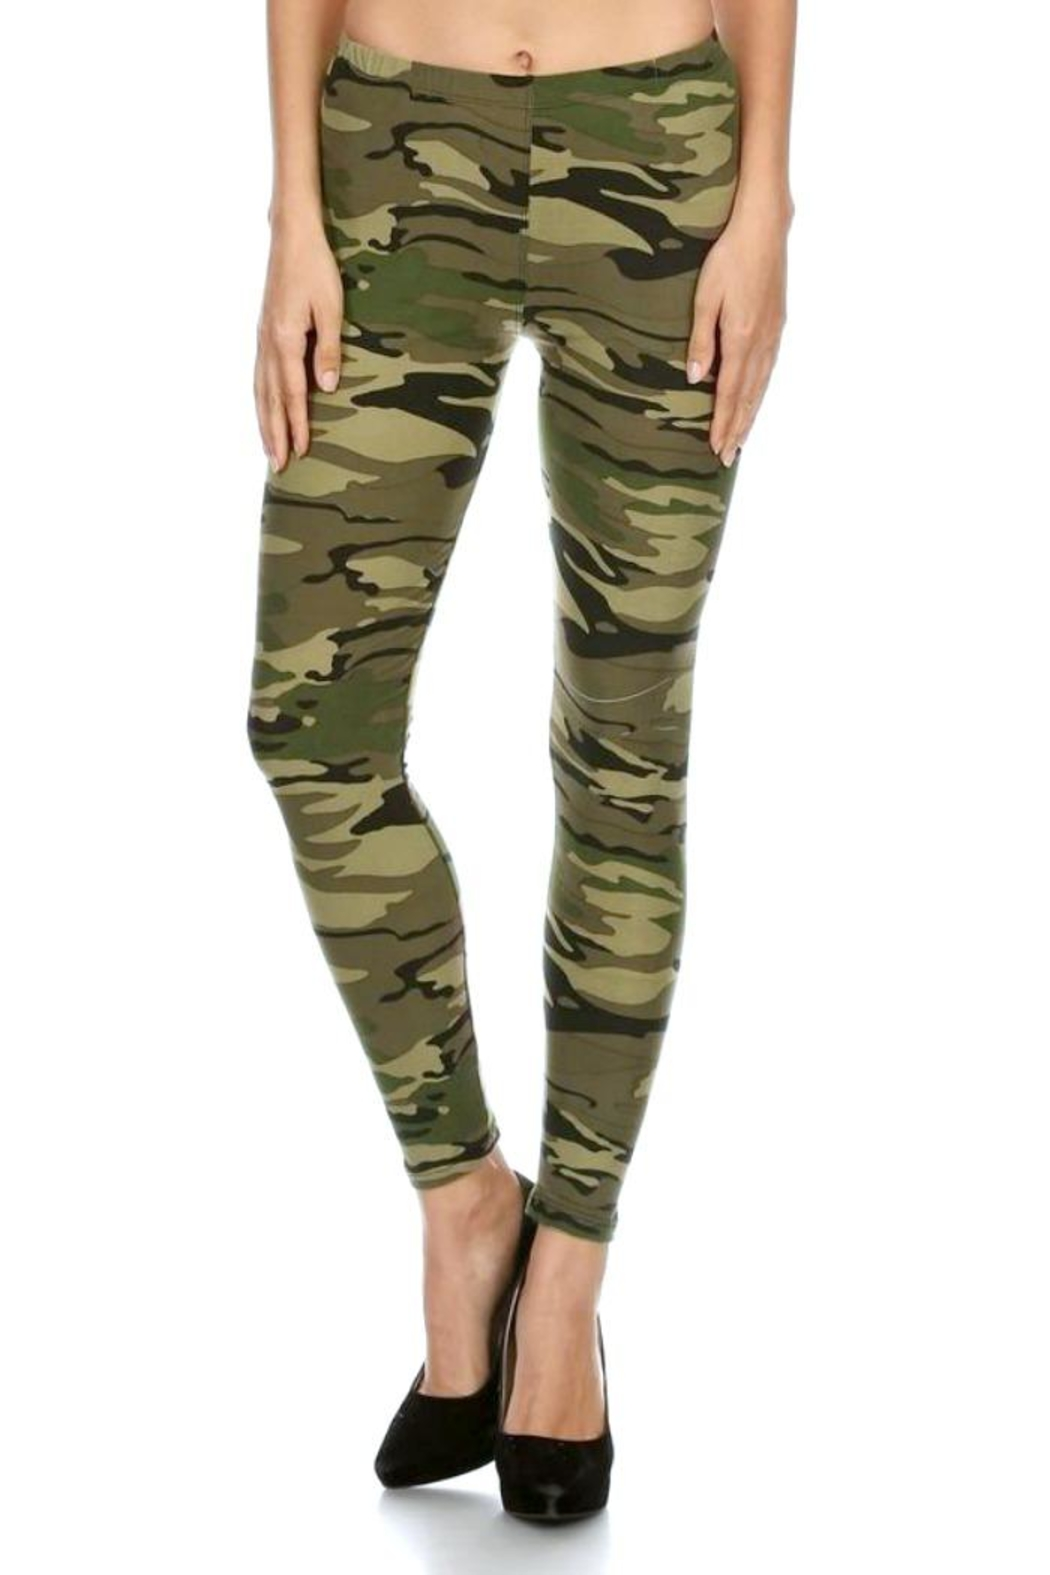 Simply Chic Soft Camouflage Leggings - Main Image